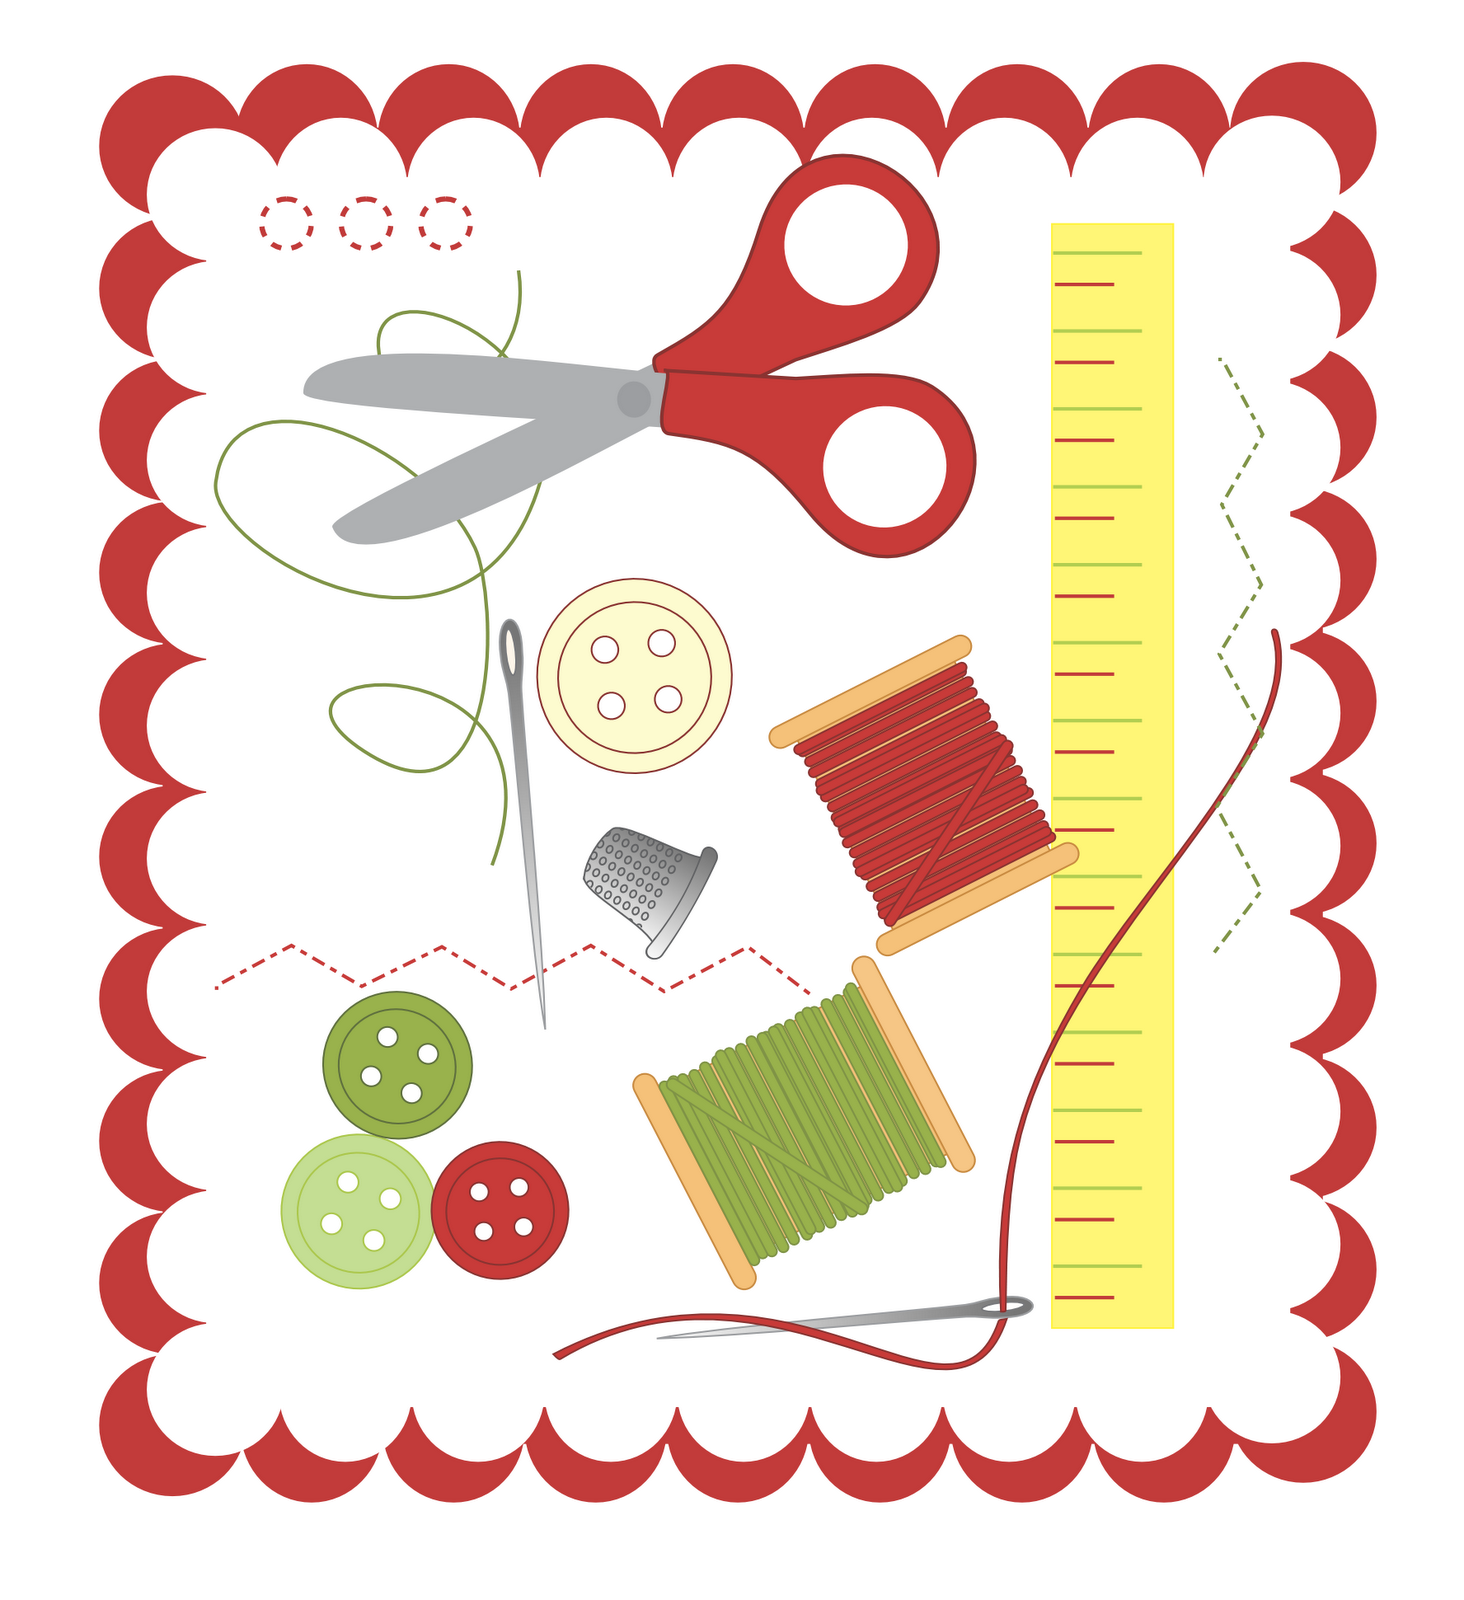 Sewing Clipart Free-Sewing Clipart Free-8